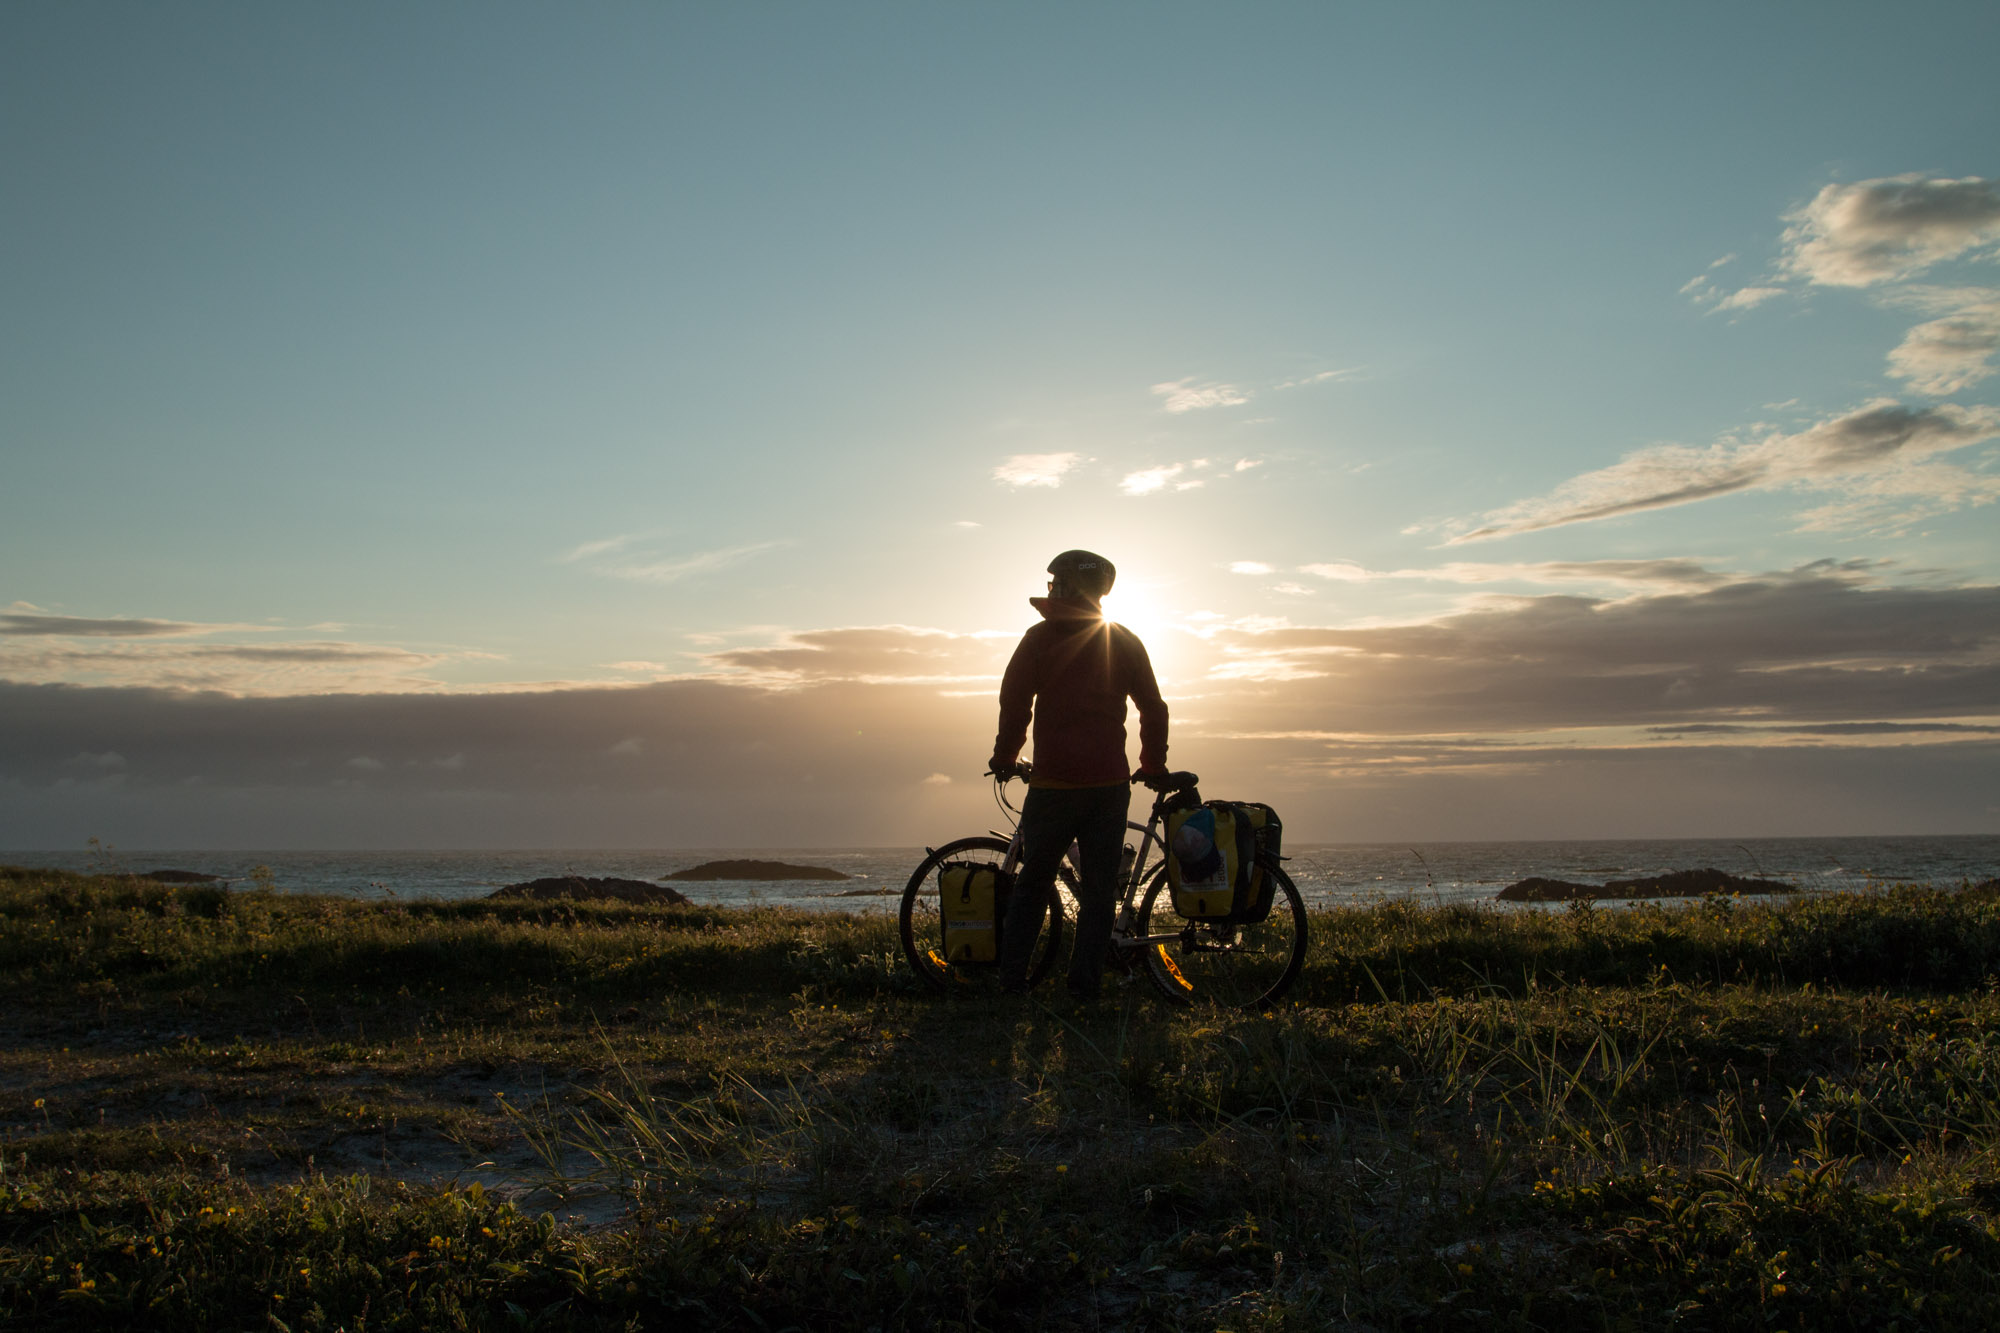 Brendan Leonard looks out at the Norwegian Sea from a beach outside Andenes on the seconde night of a bike tour in northern Norway.